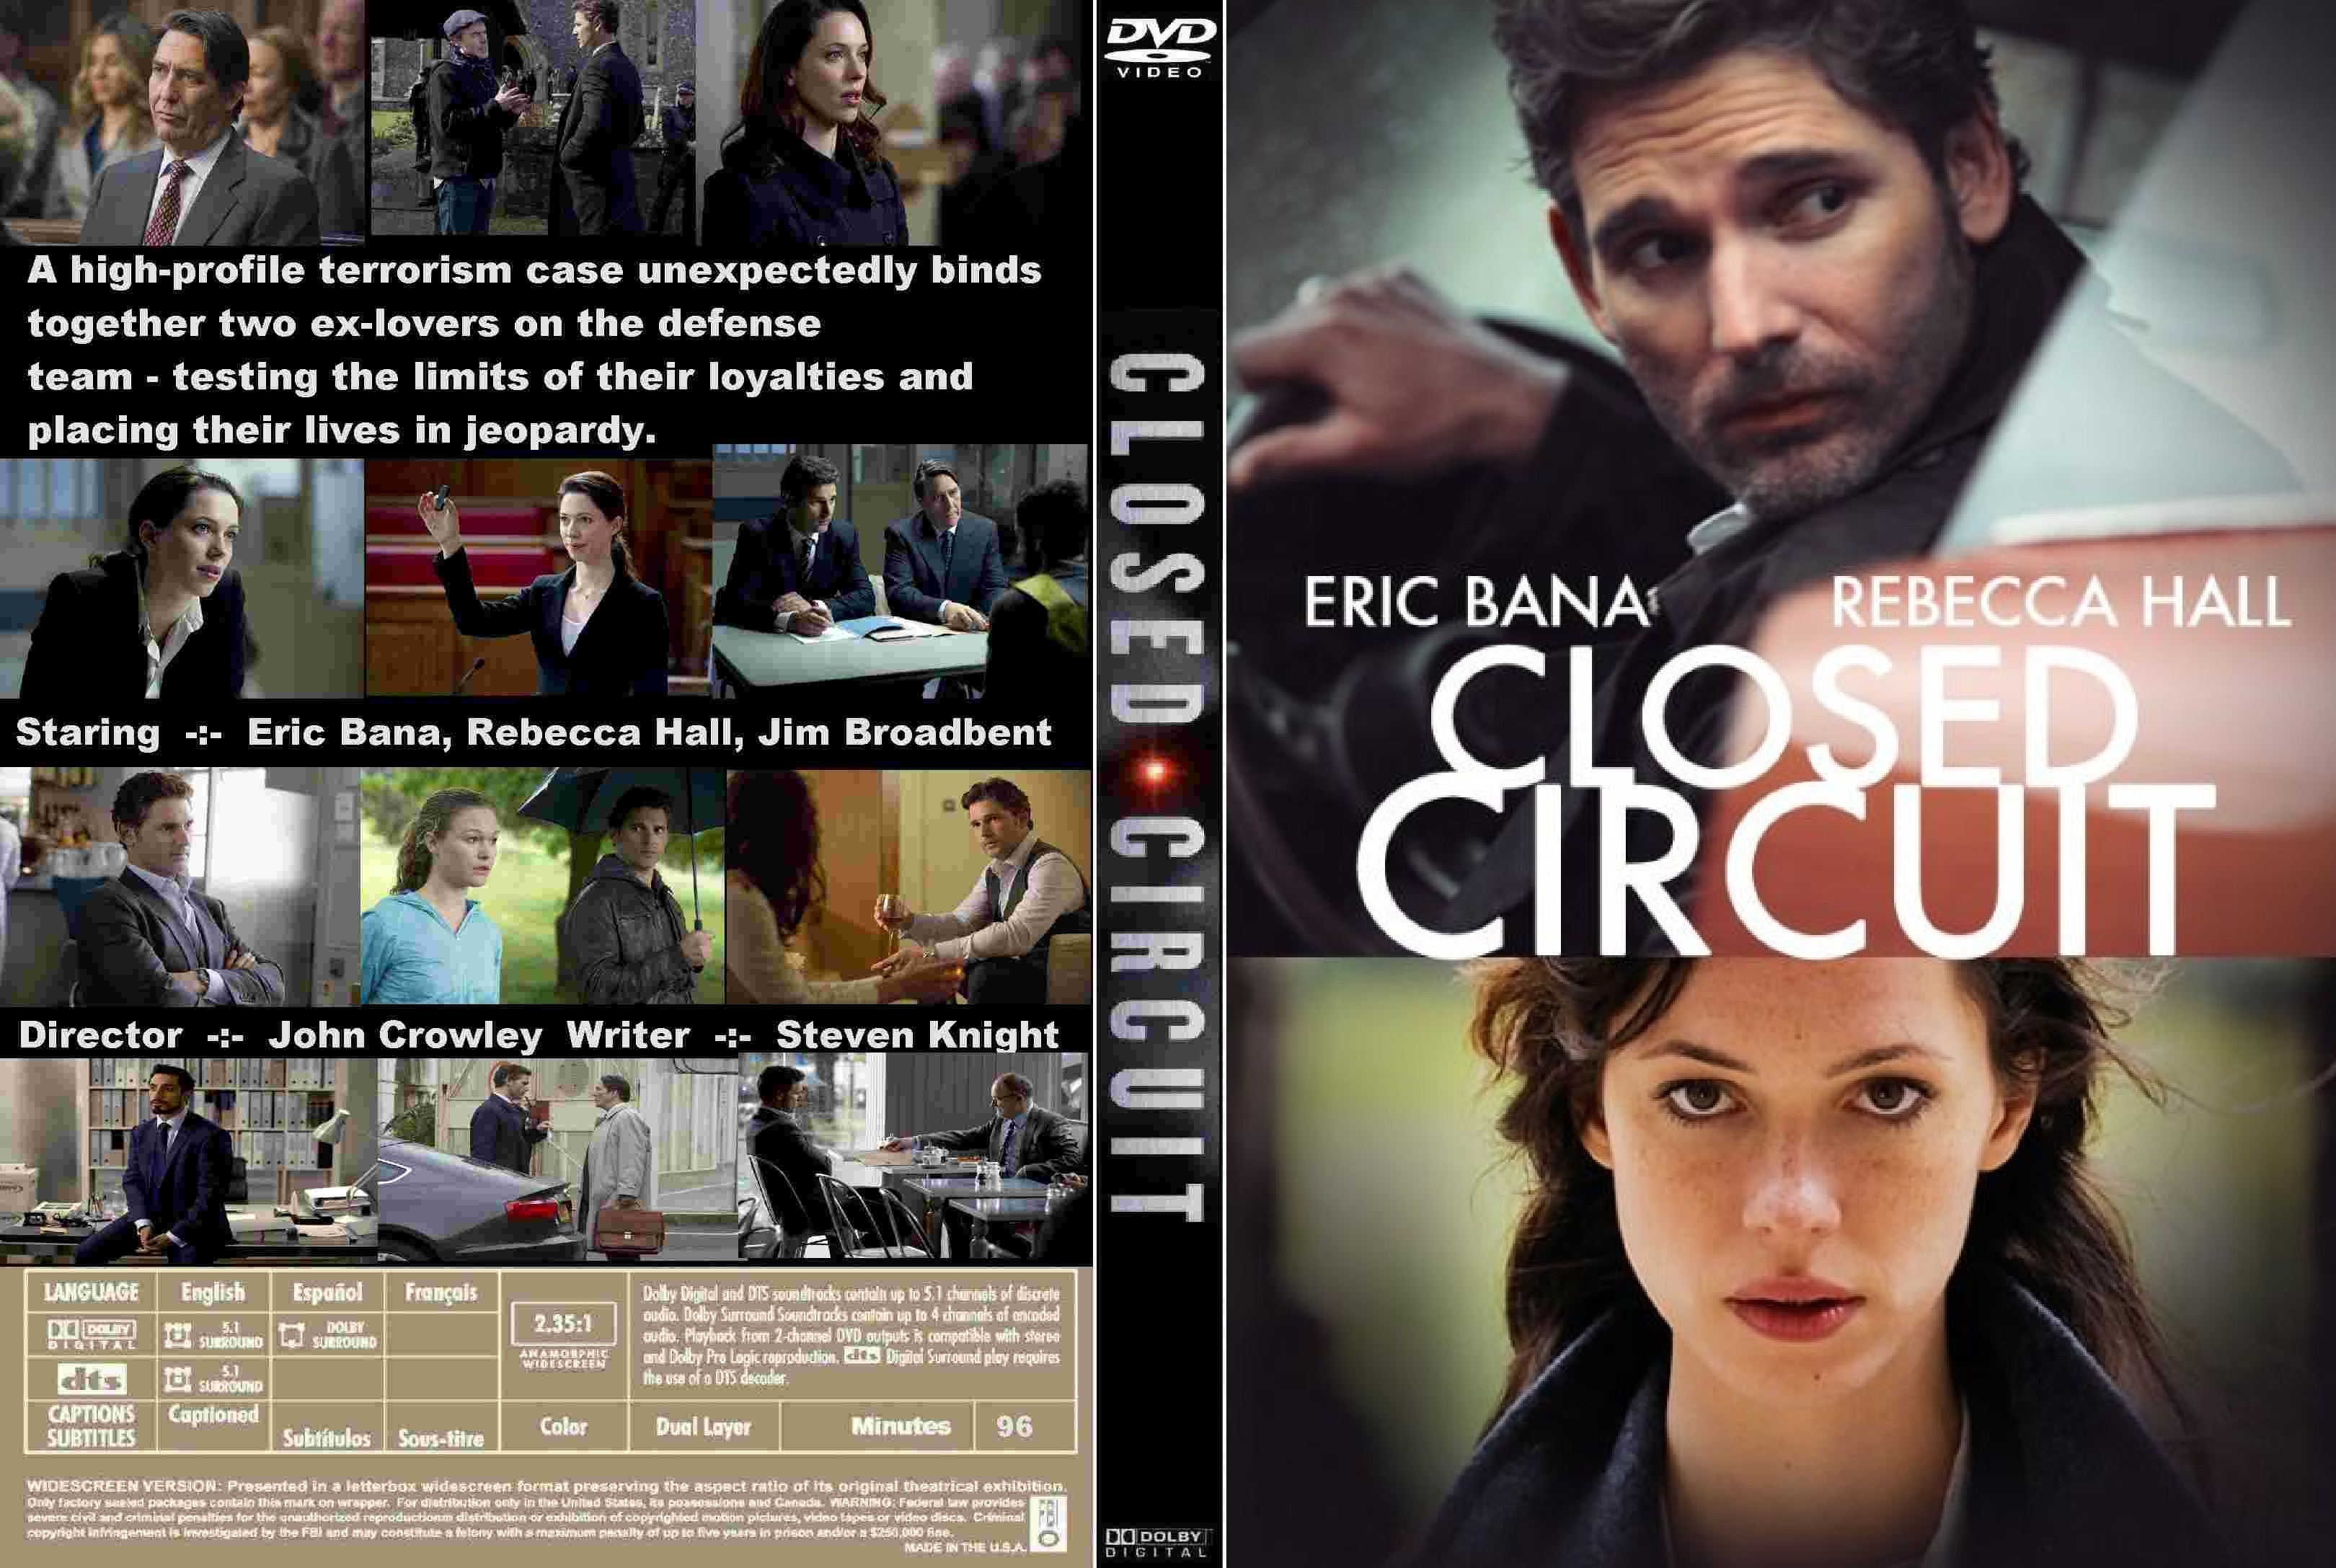 Download Movie Closed Circuit 2013 For Free: Download